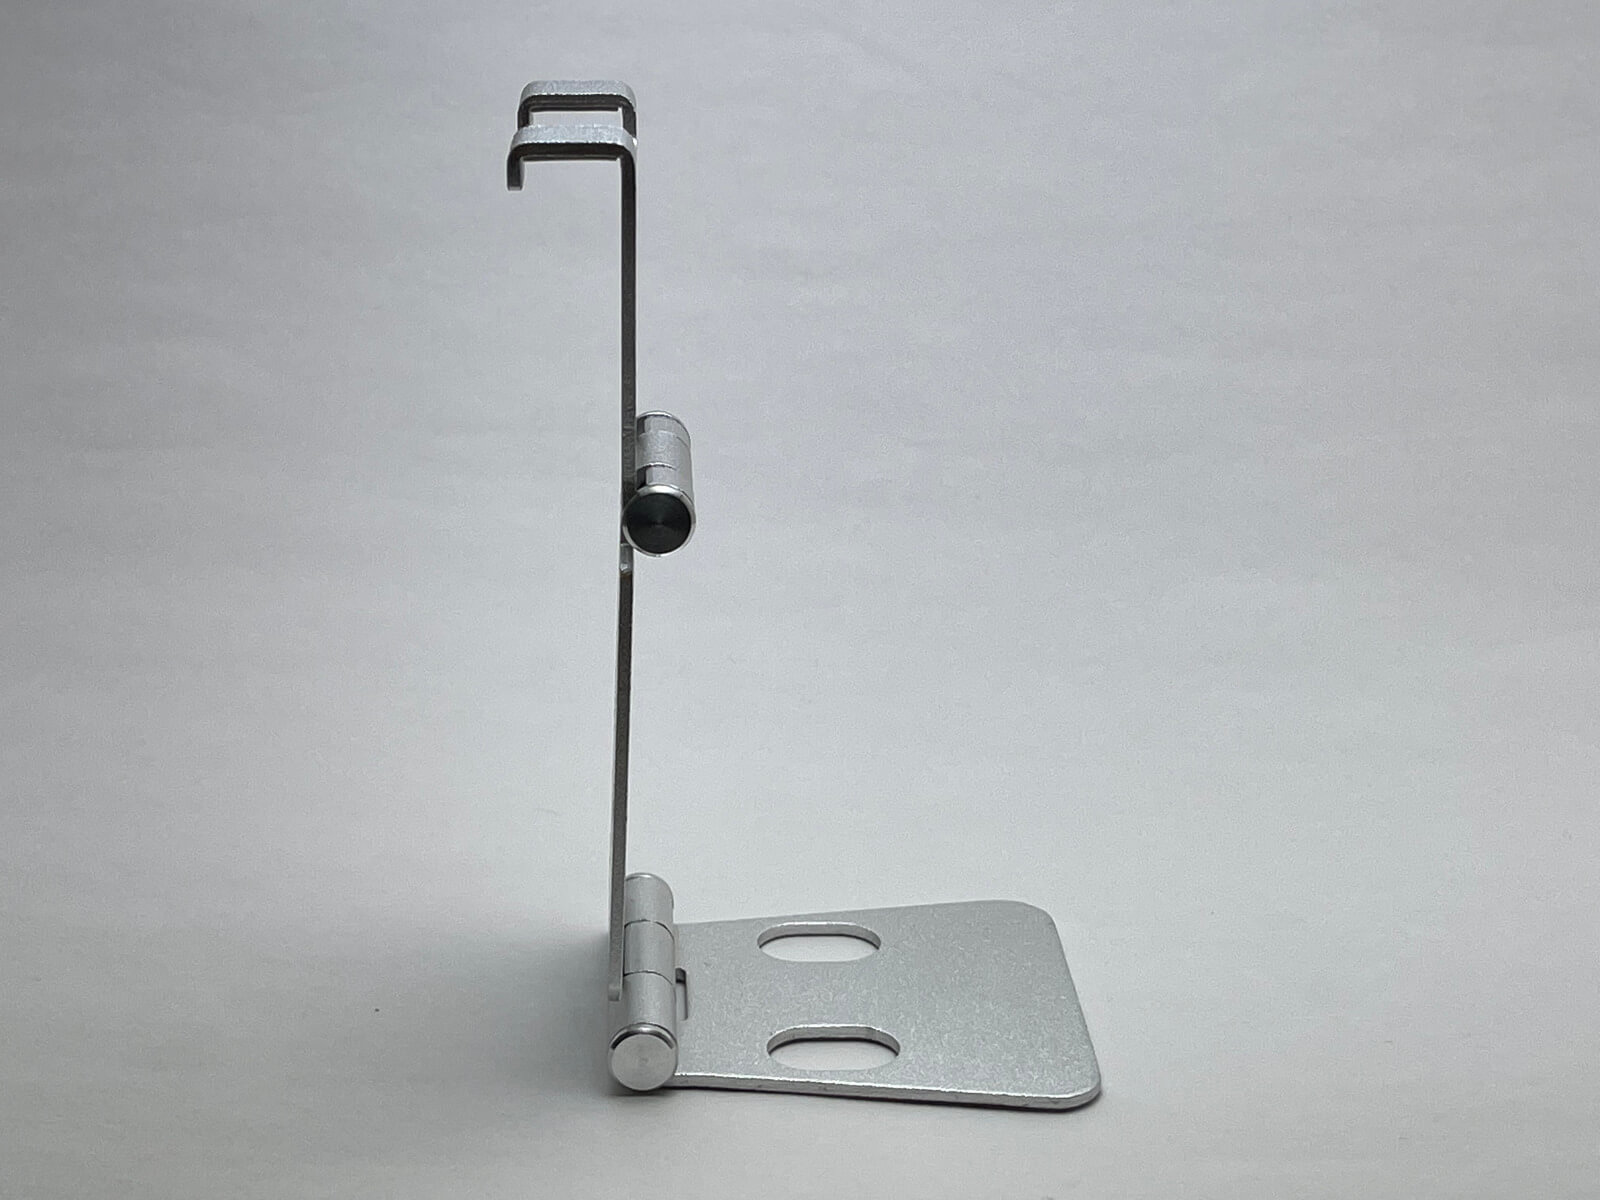 iphone12-stand-03-photo-009